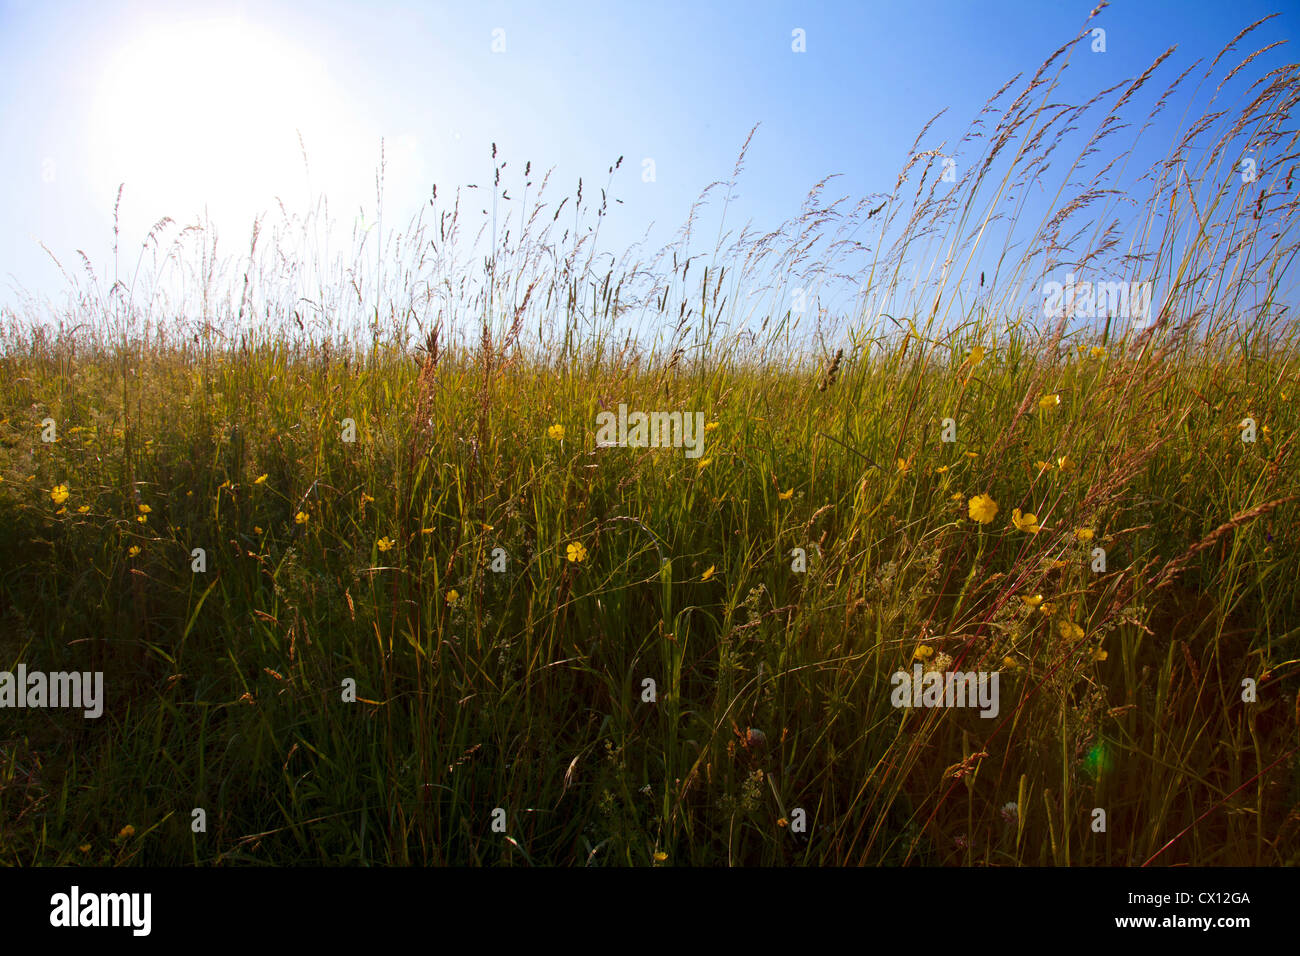 long grass stockfotos long grass bilder alamy. Black Bedroom Furniture Sets. Home Design Ideas